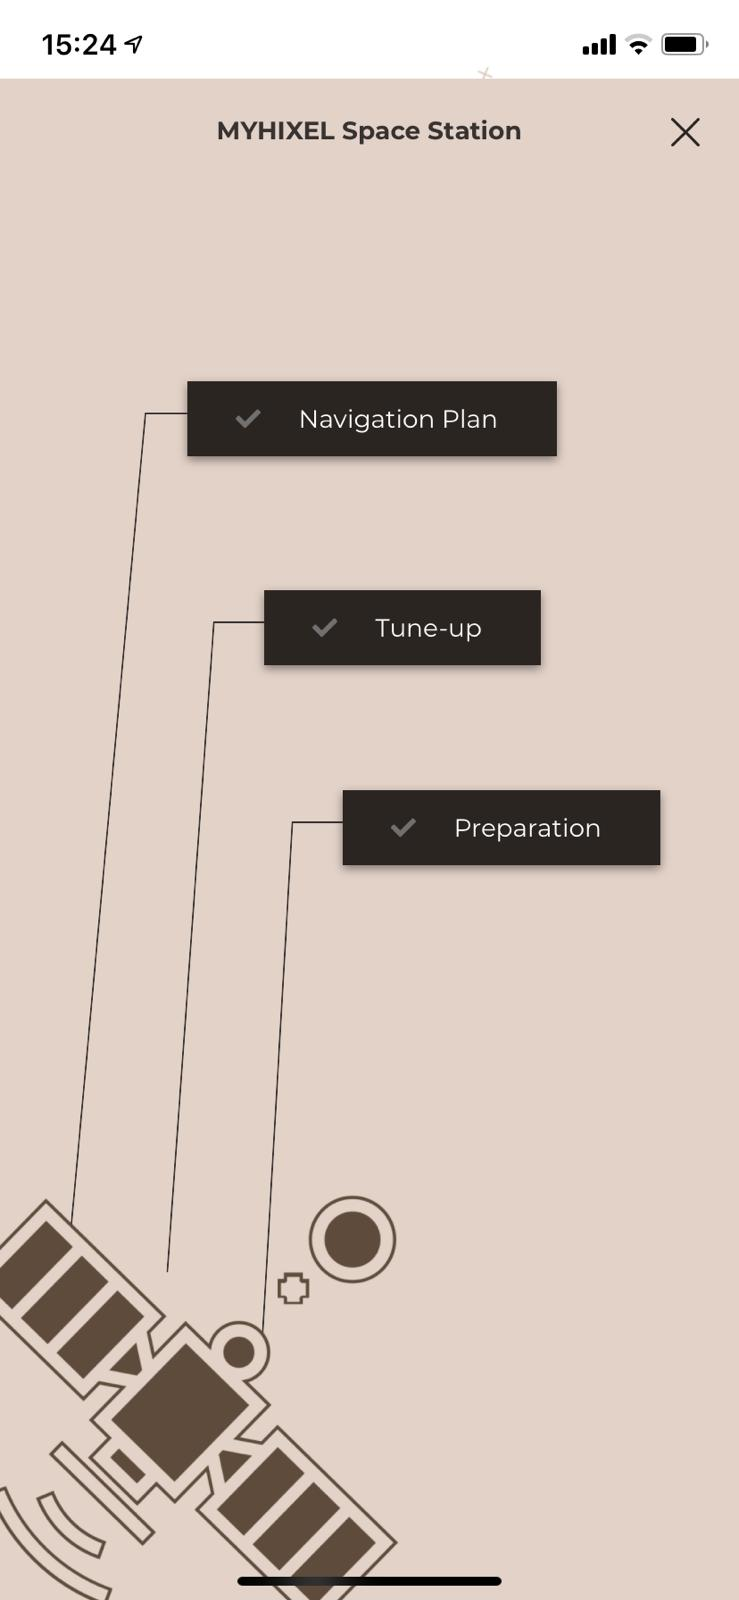 Screengrab from the app depicting prep/levels as stages of preparation on a space station